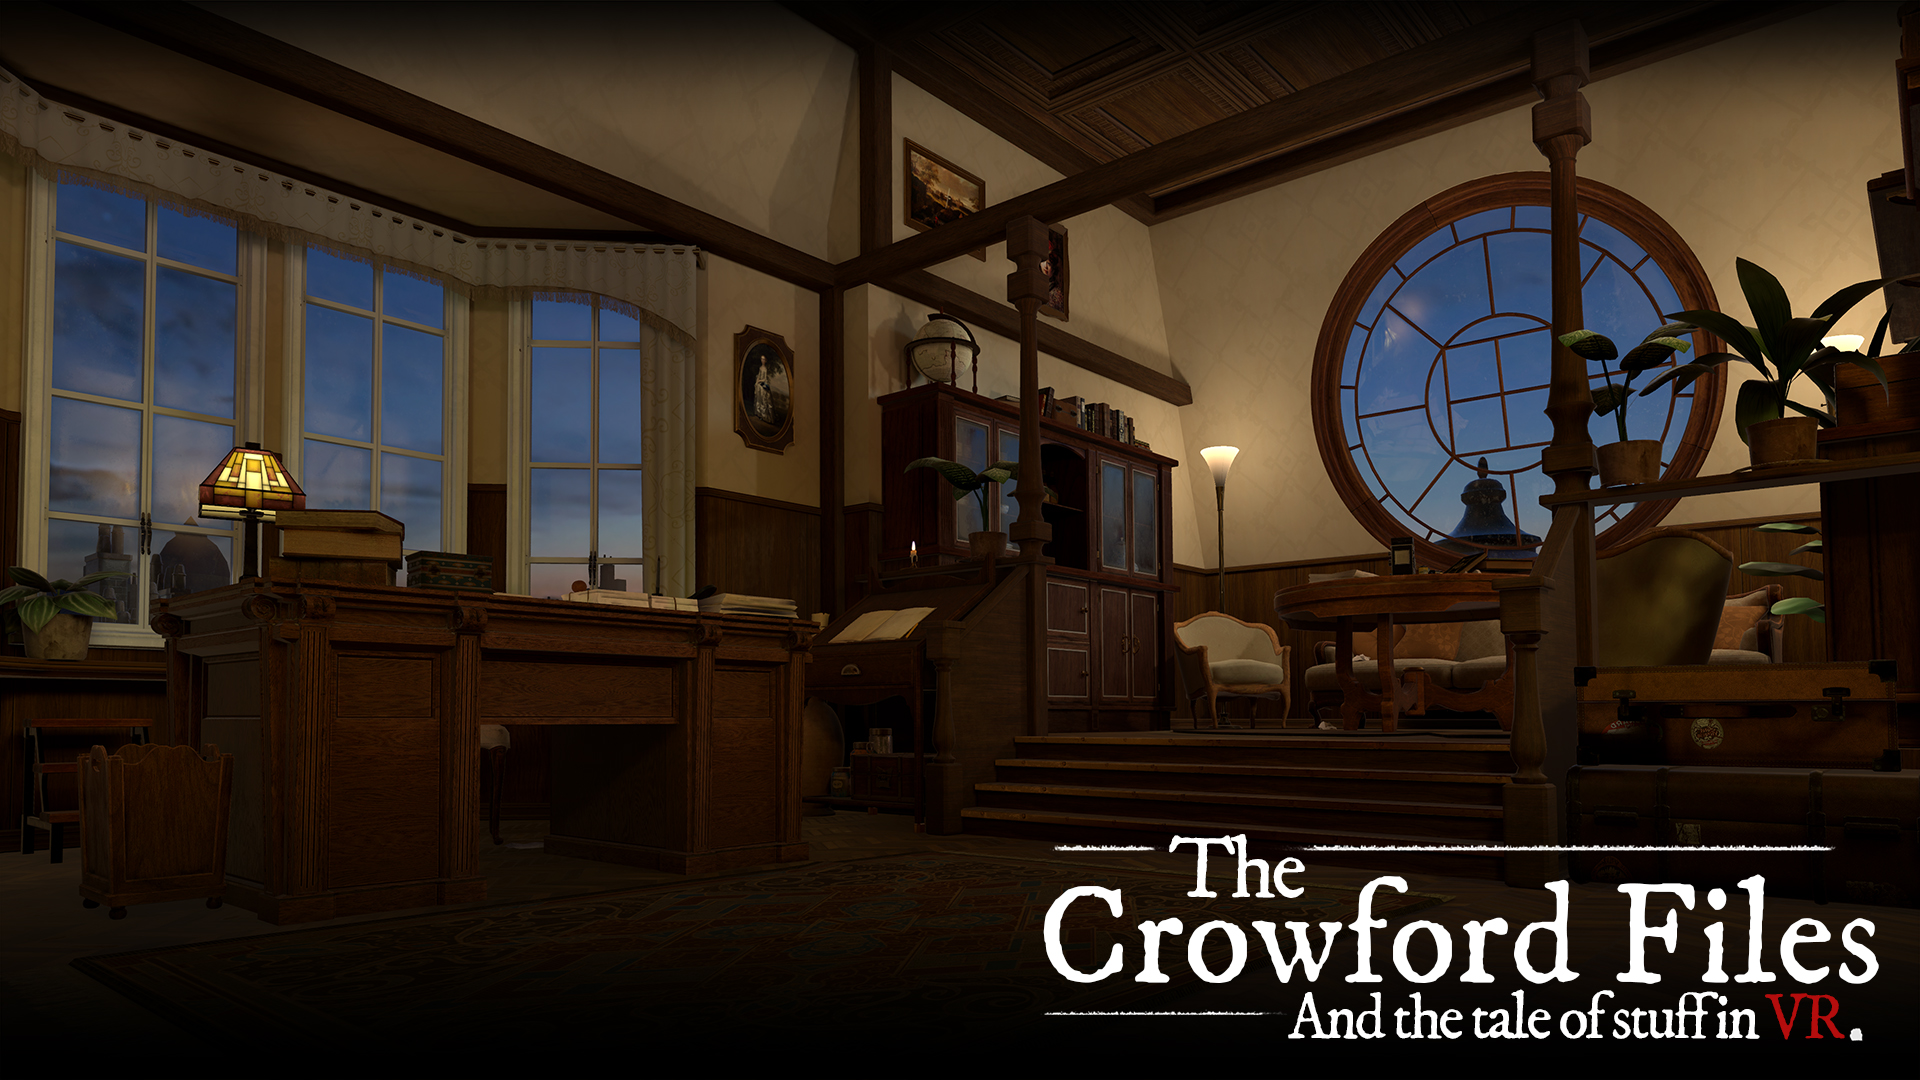 The Crowford Files